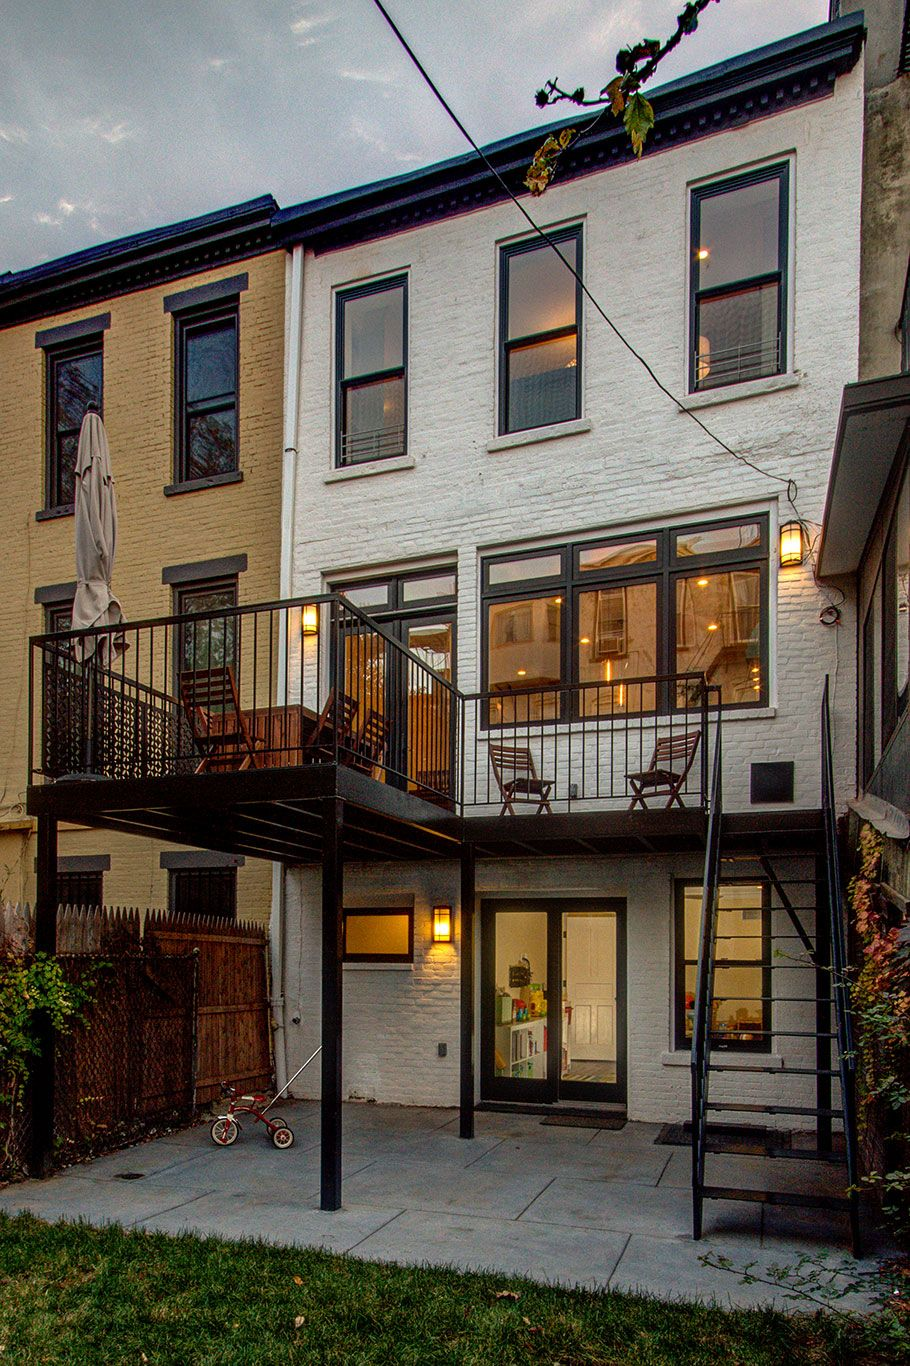 A New Rear Facade With Enlarged Doors And Windows Adds Life Increases The Living Space Of This Traditional Brooklyn Brownstone Home